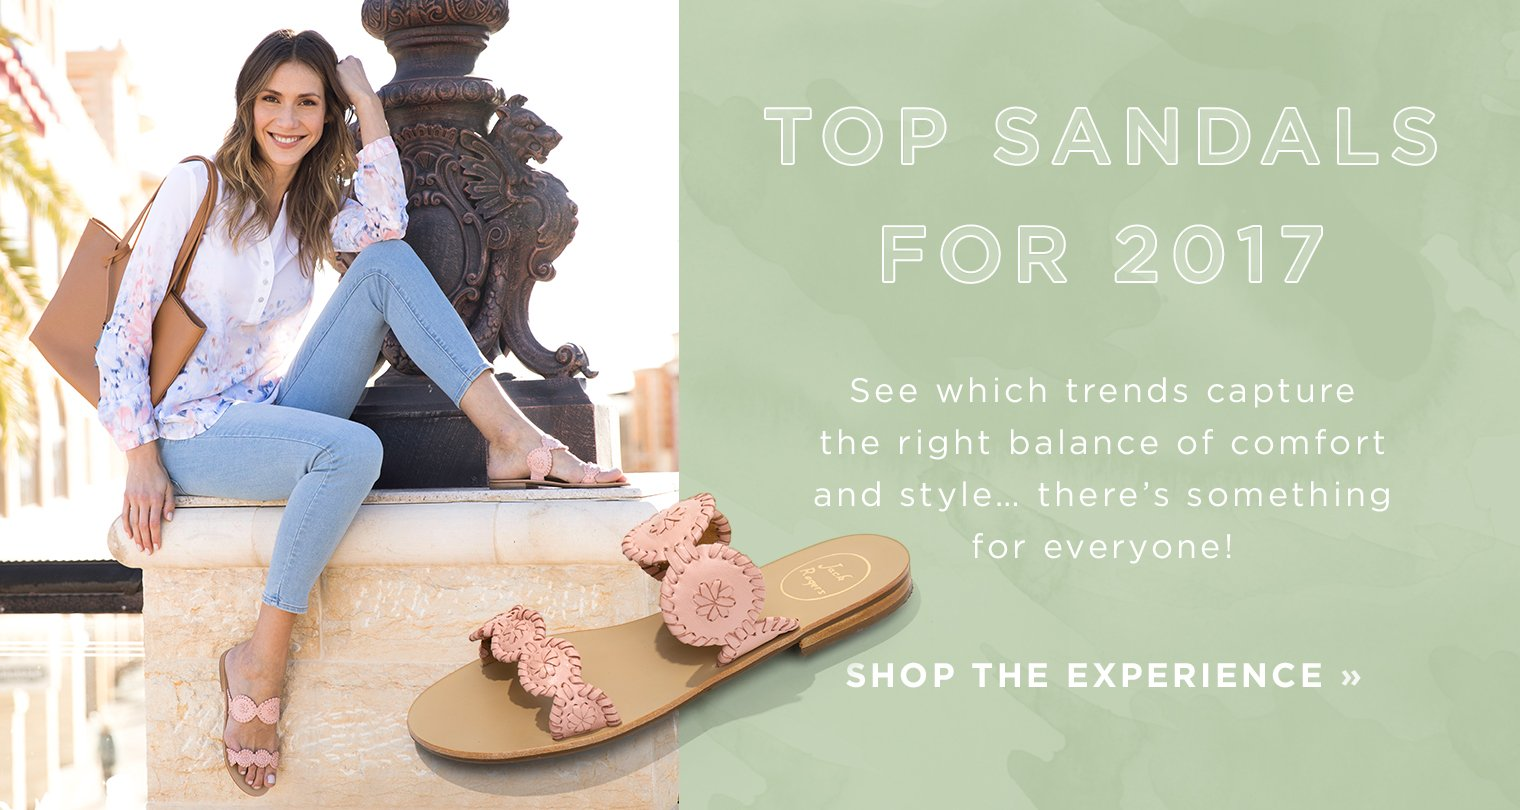 Hero-2-Top Sandals Co-op-3-6-2017 Spring Into Action